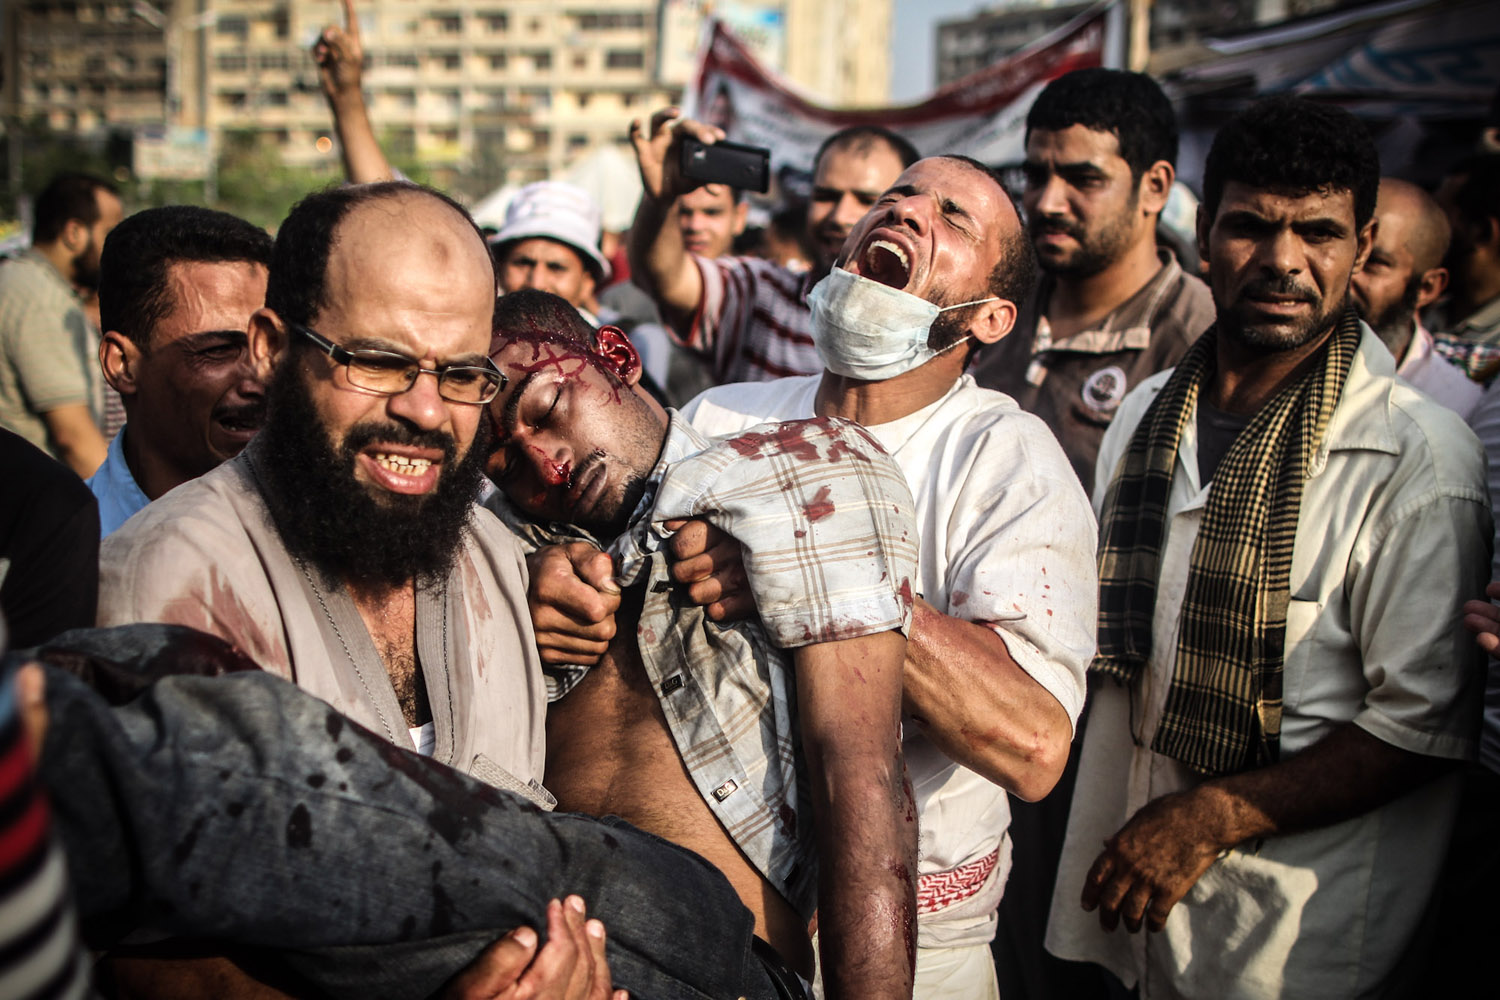 The following photographs were taken on July 27, 2013Morsi supporters carry a man shot in the head outside the makeshift hospital in Rabaa Square.